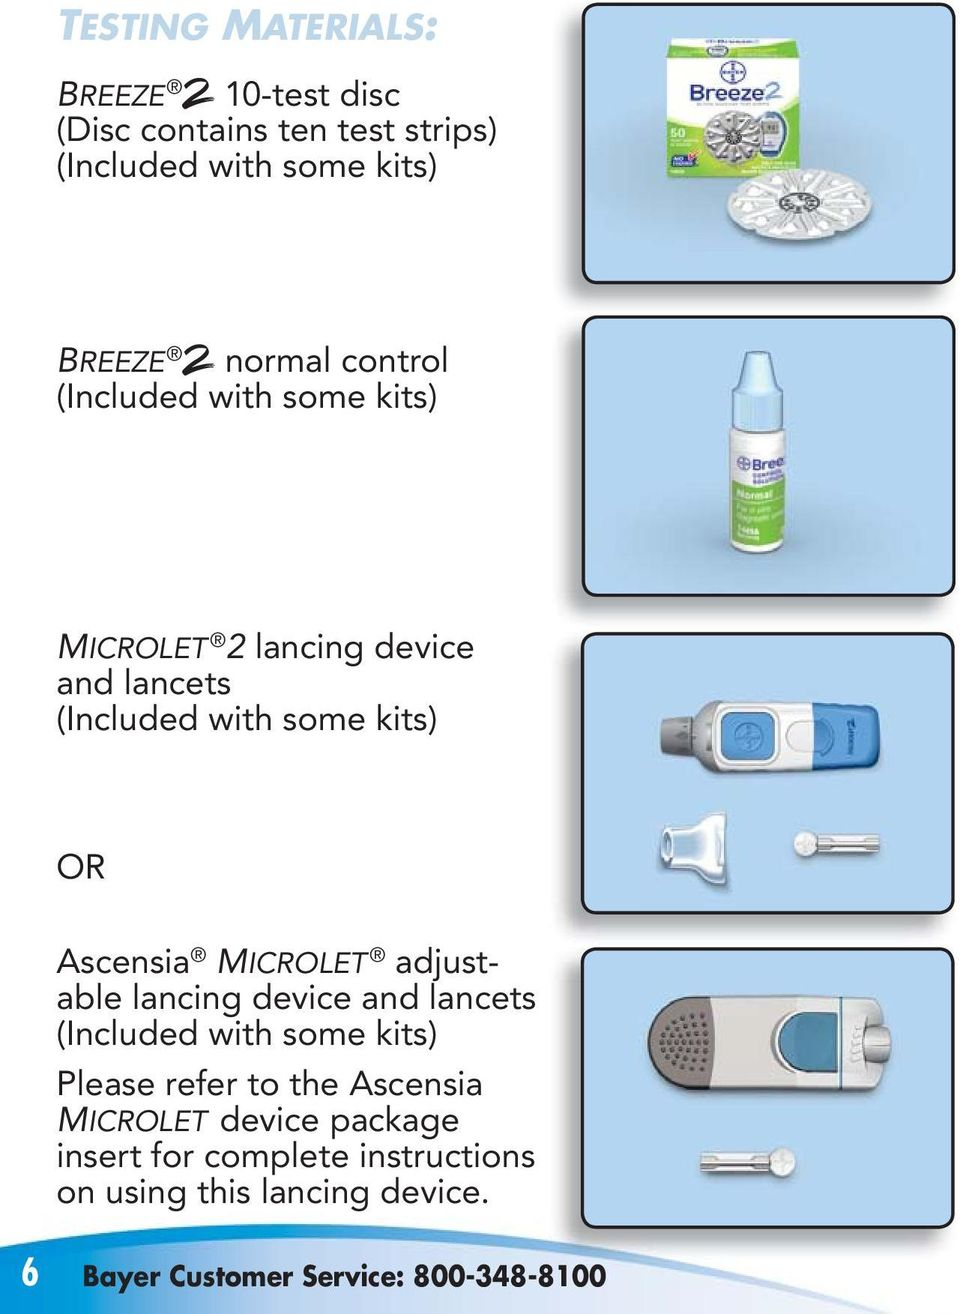 bayer microlet 2 instructions